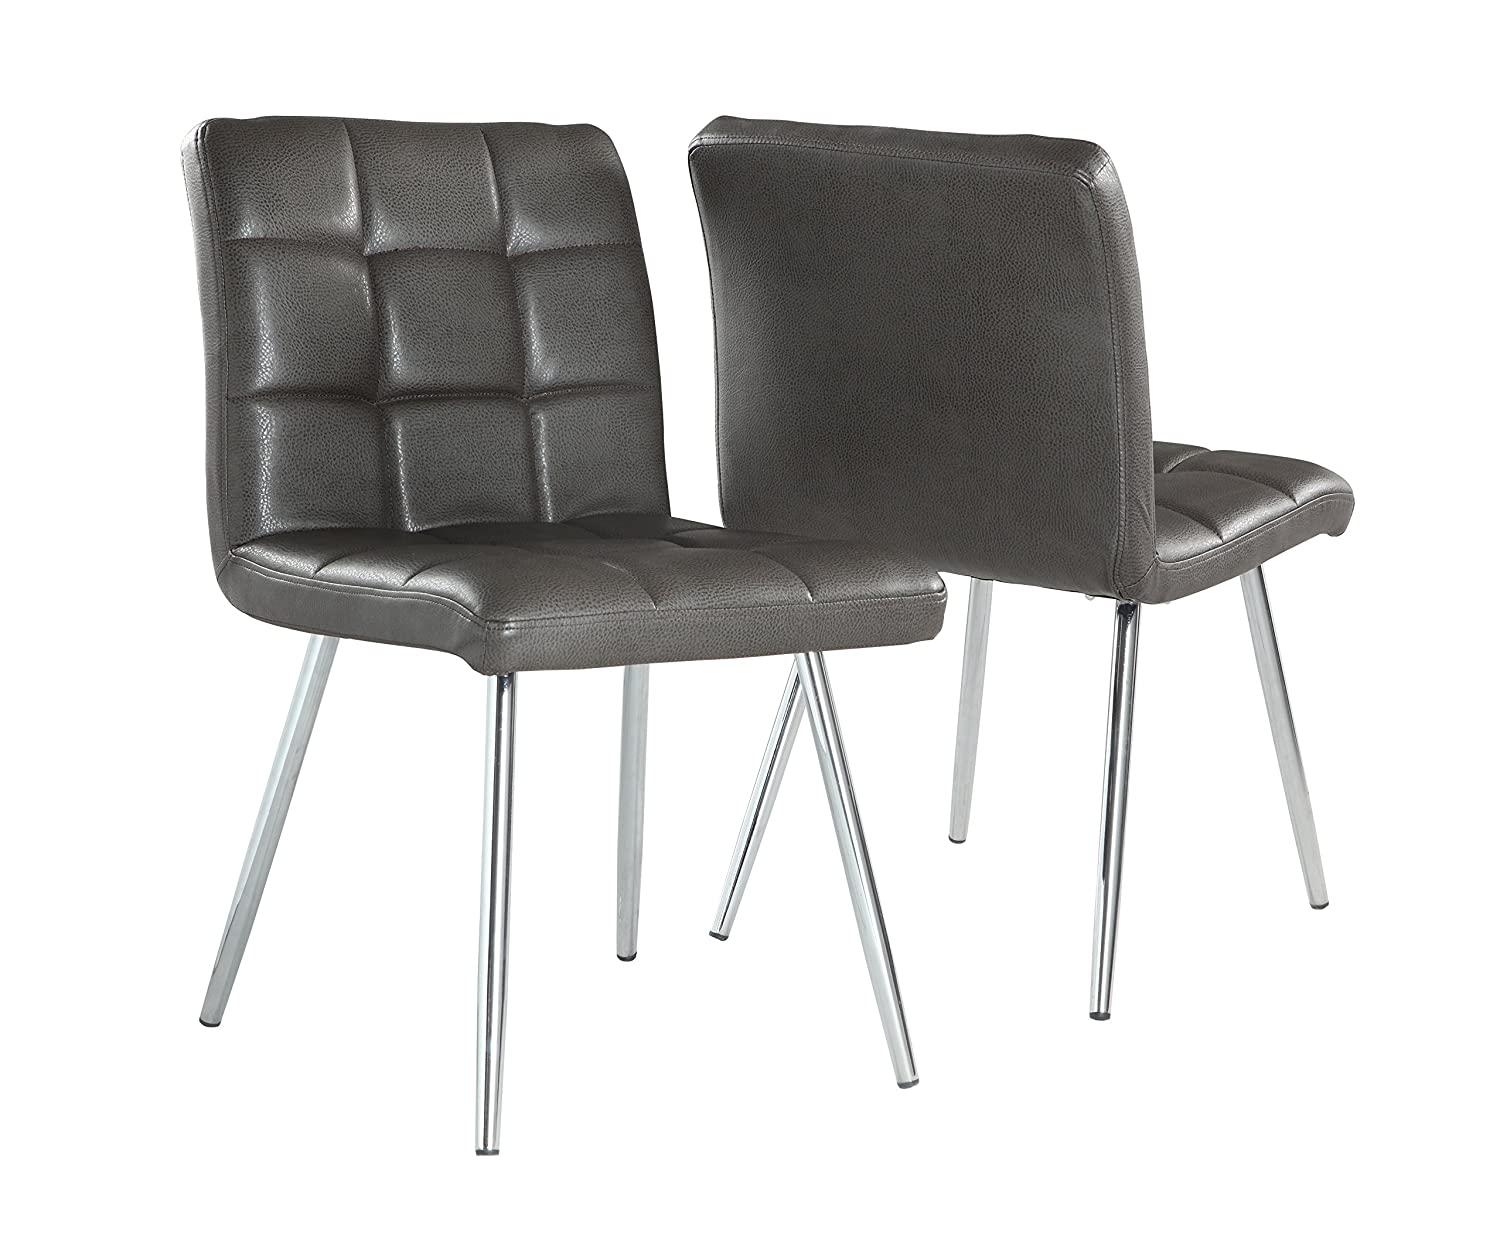 Marvelous Amazon.com   Monarch Specialties Grey Leather Look/Chrome Metal 2 Piece Dining  Chair, 32 Inch   Chairs Part 12